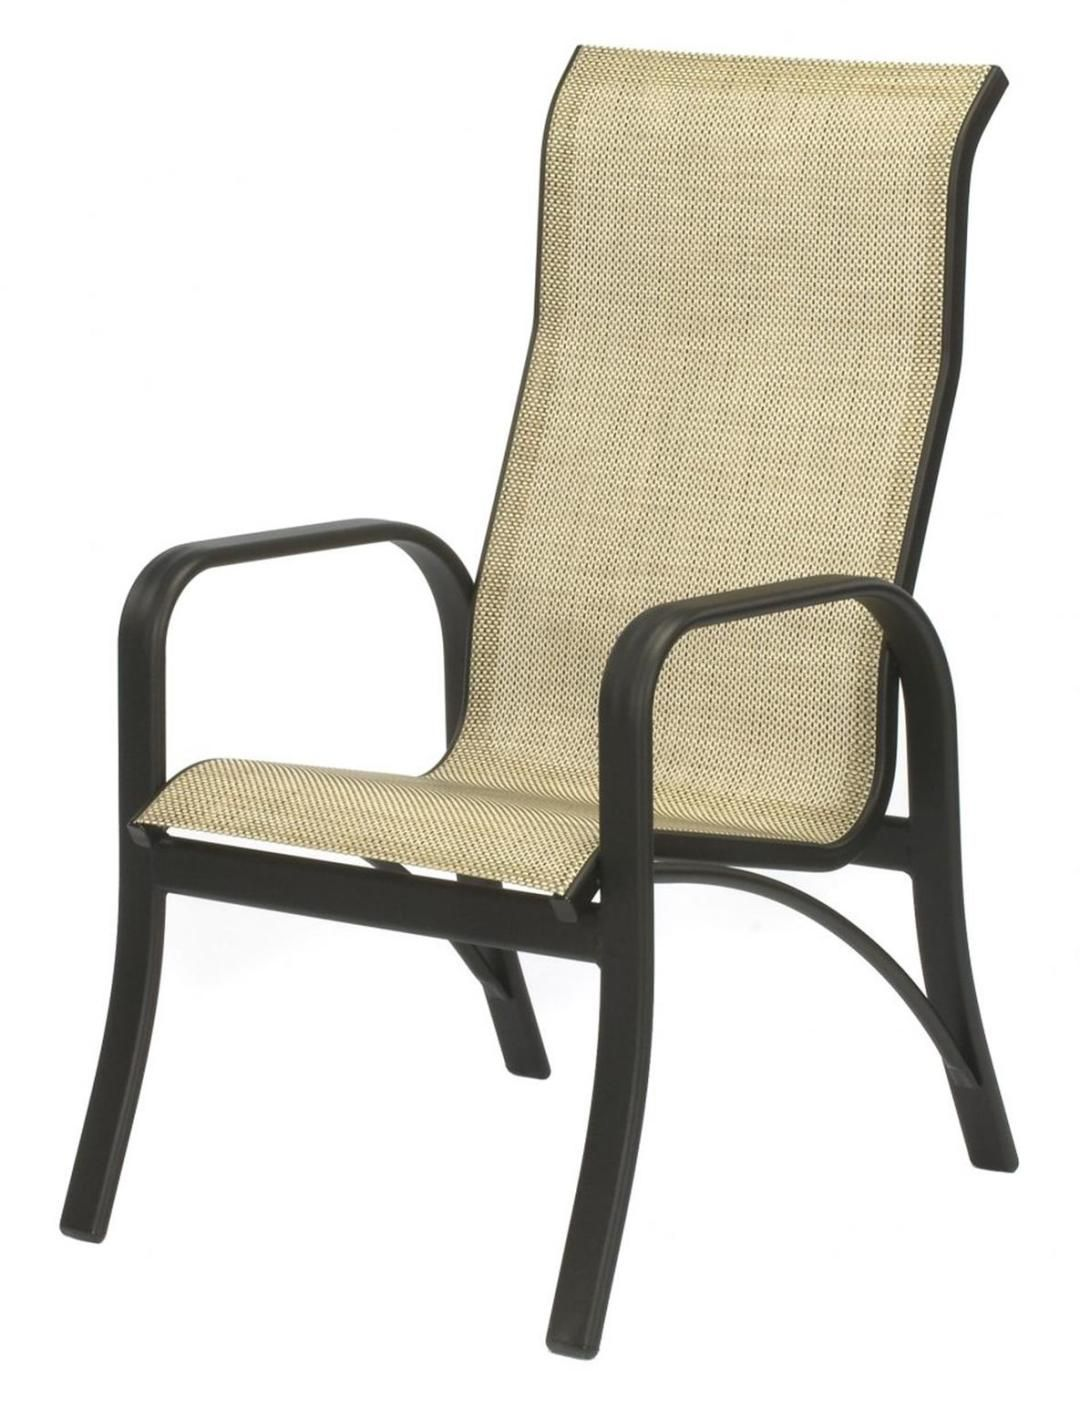 Charmant Home Depot Porch Furniture 17